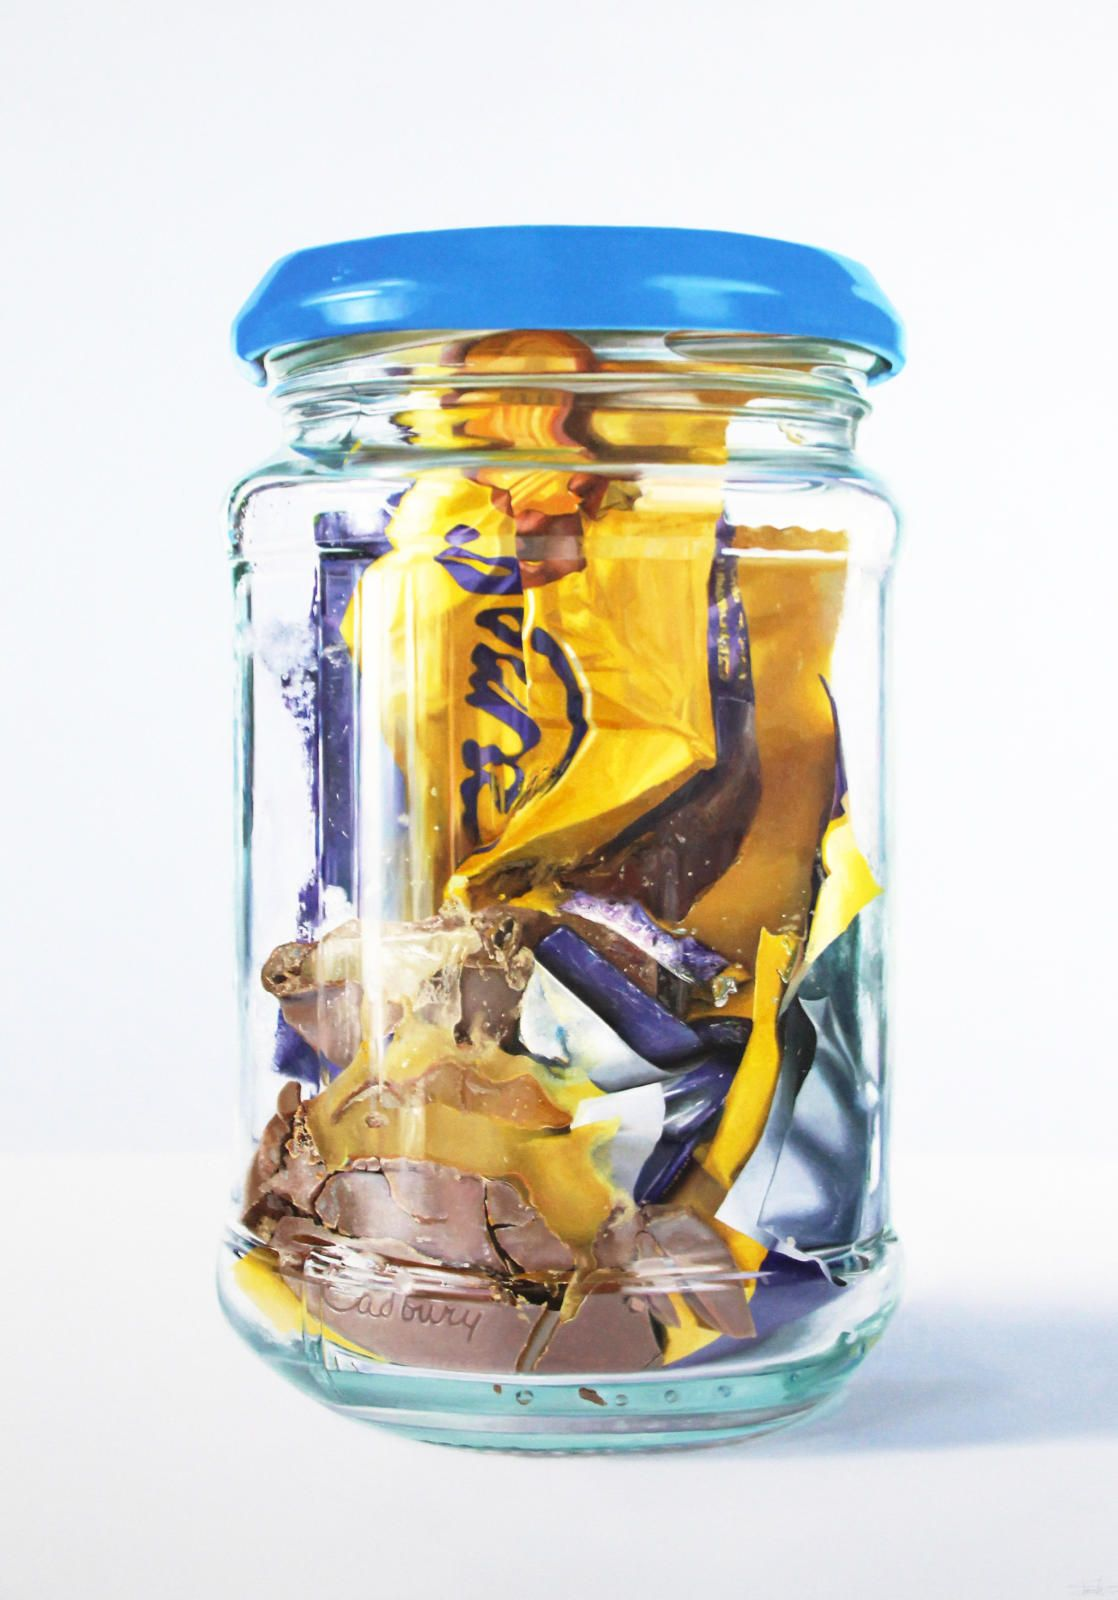 Caramel in a Jar